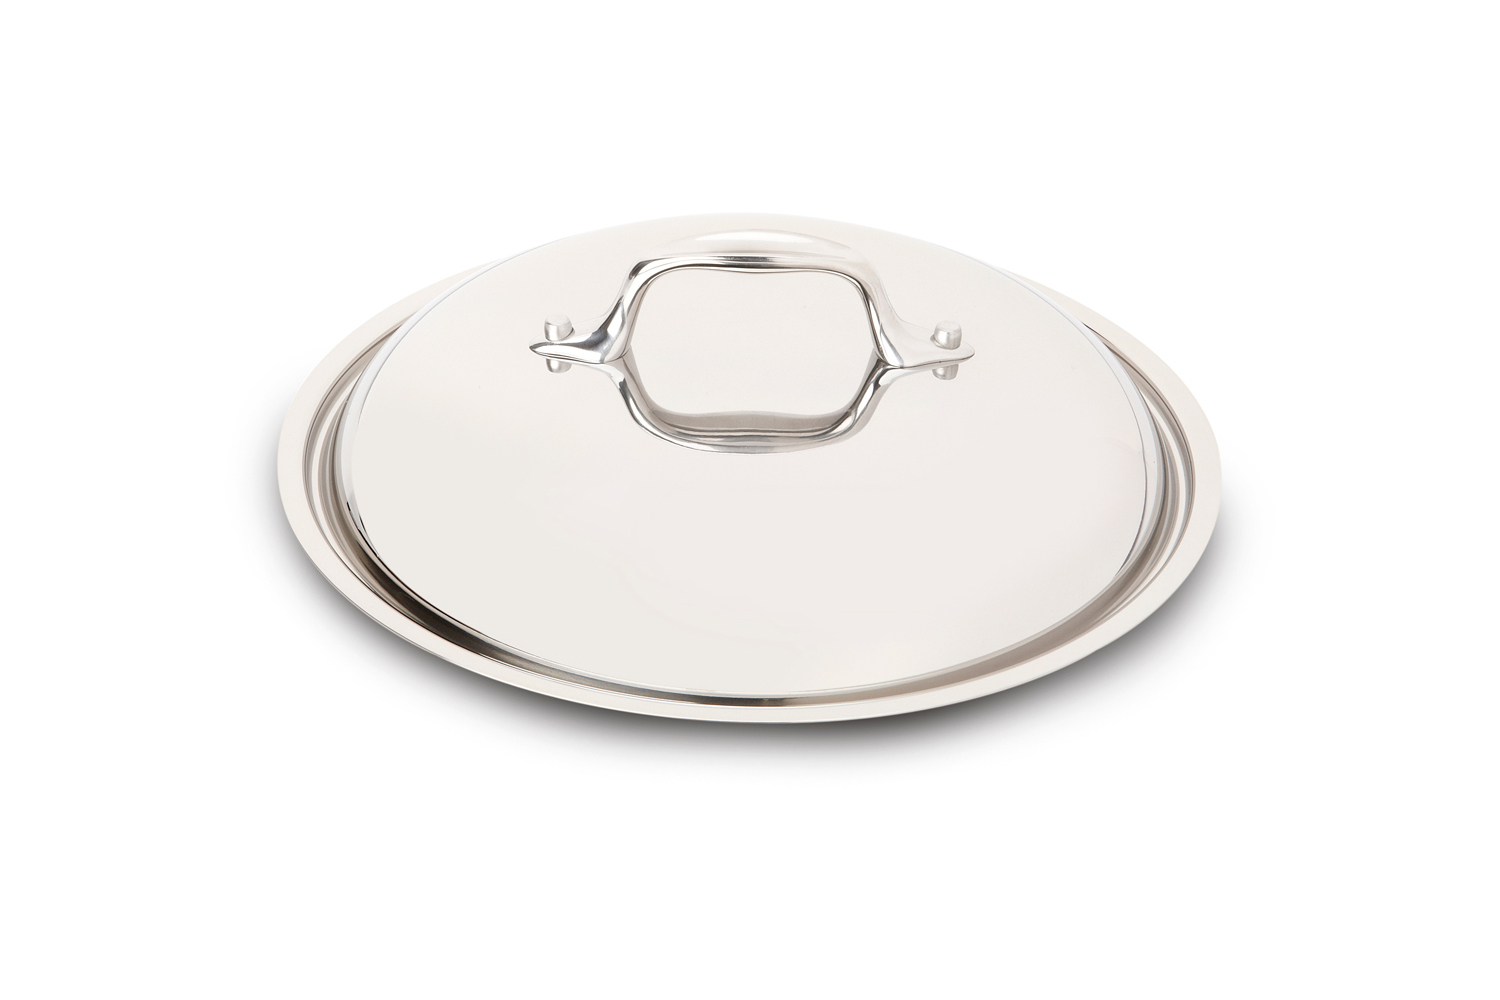 All-Clad Stainless Steel 12 1/2 inch Dome Lid